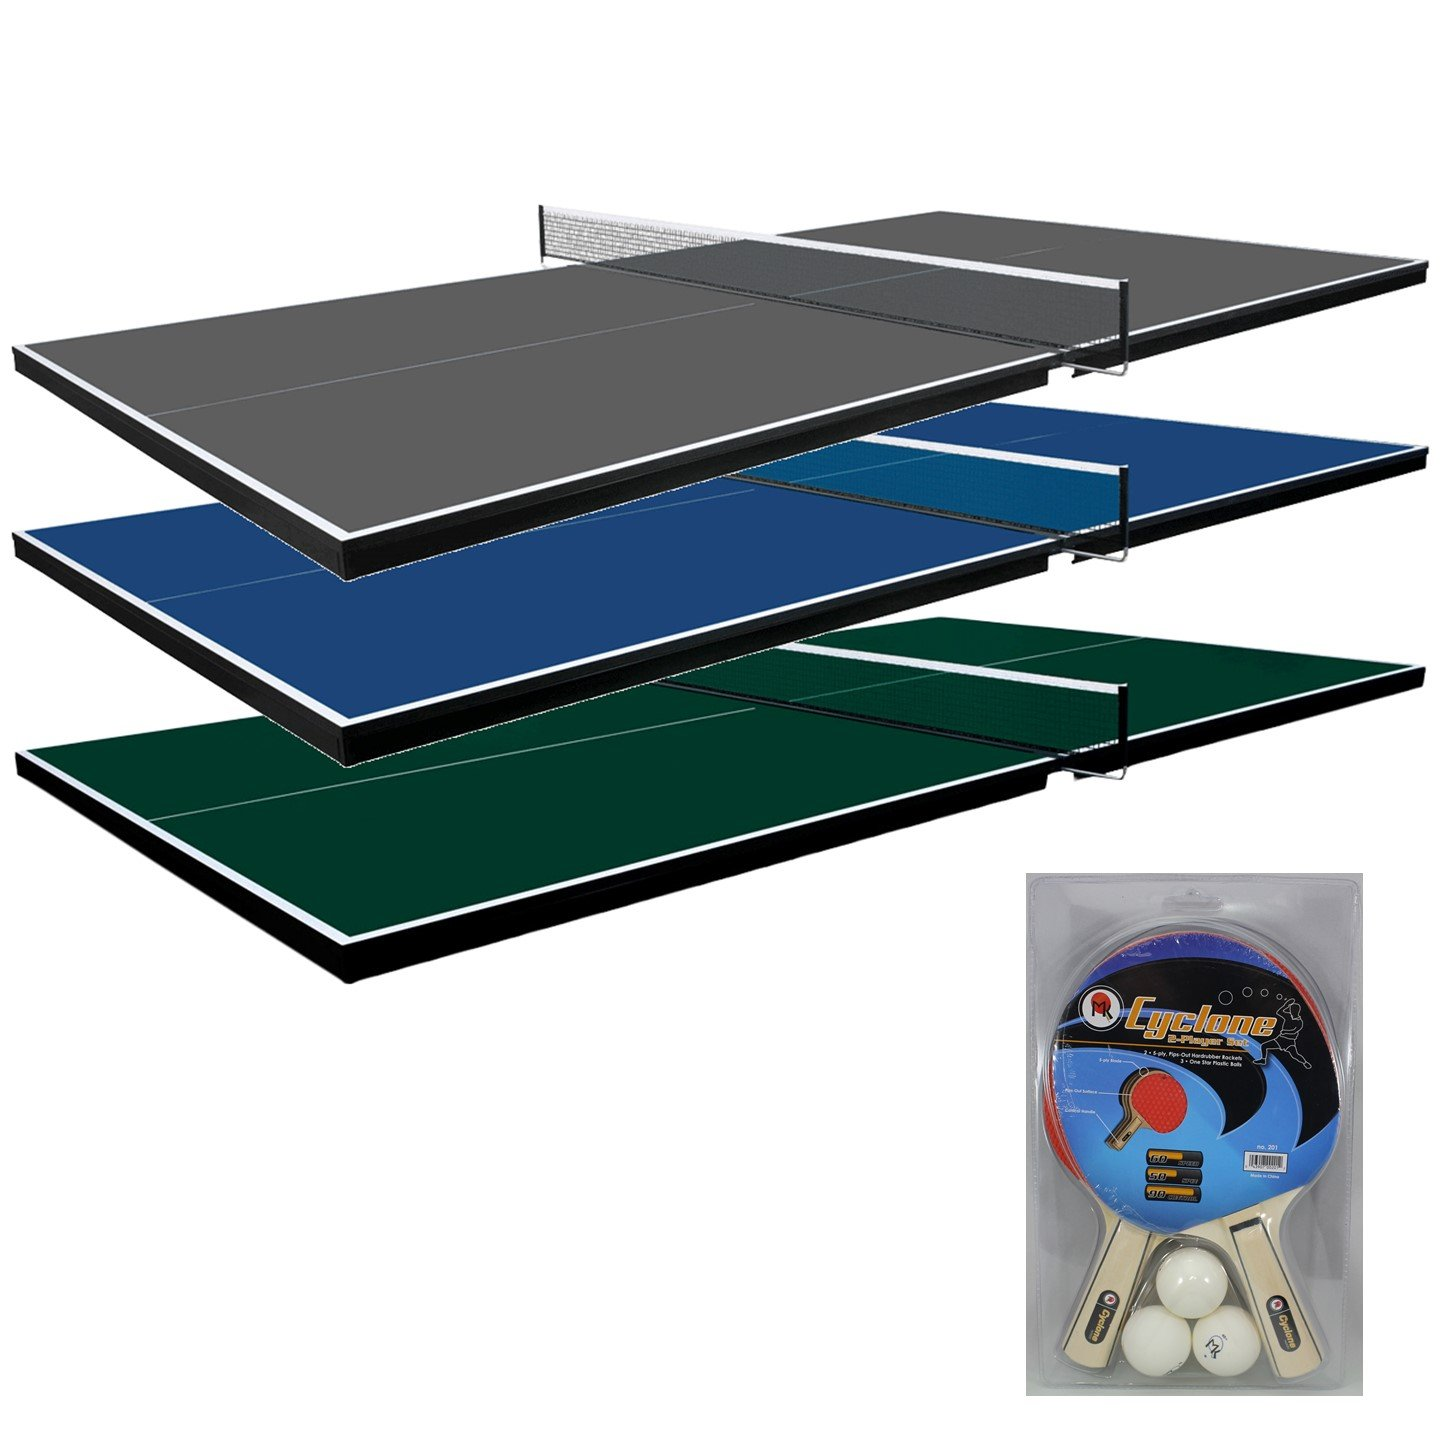 Martin Kilpatrick Ping Pong Table for Billiard Table | Conversion Table Tennis Game Table | Table Tennis Table w/ Warranty | Conversion Top for Pool Table Games | Table Top Games | Ping Pong Table Top